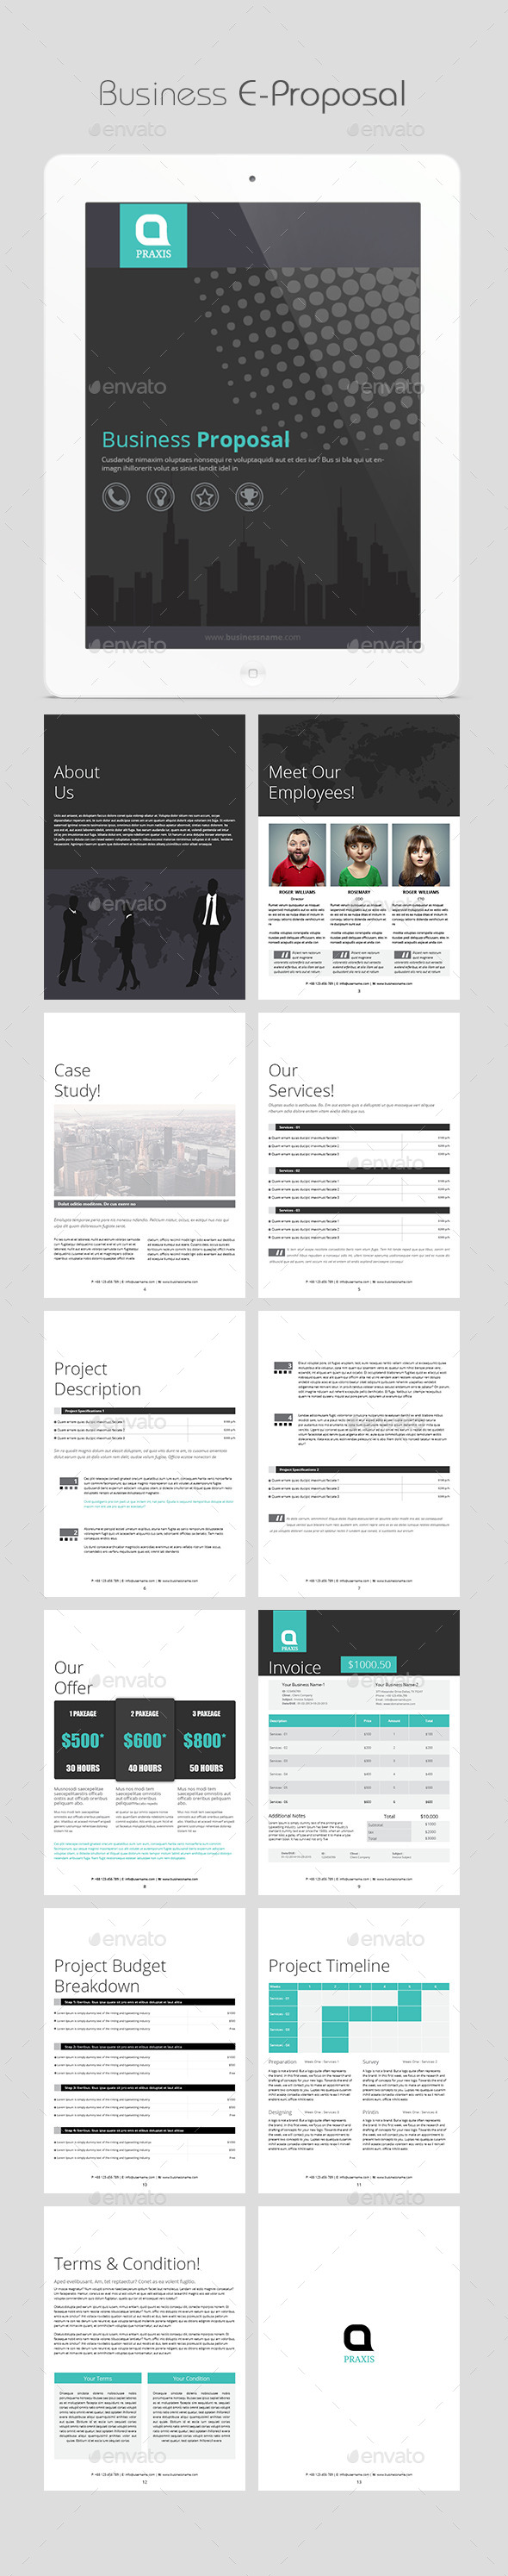 GraphicRiver Business E-Proposal 11392311